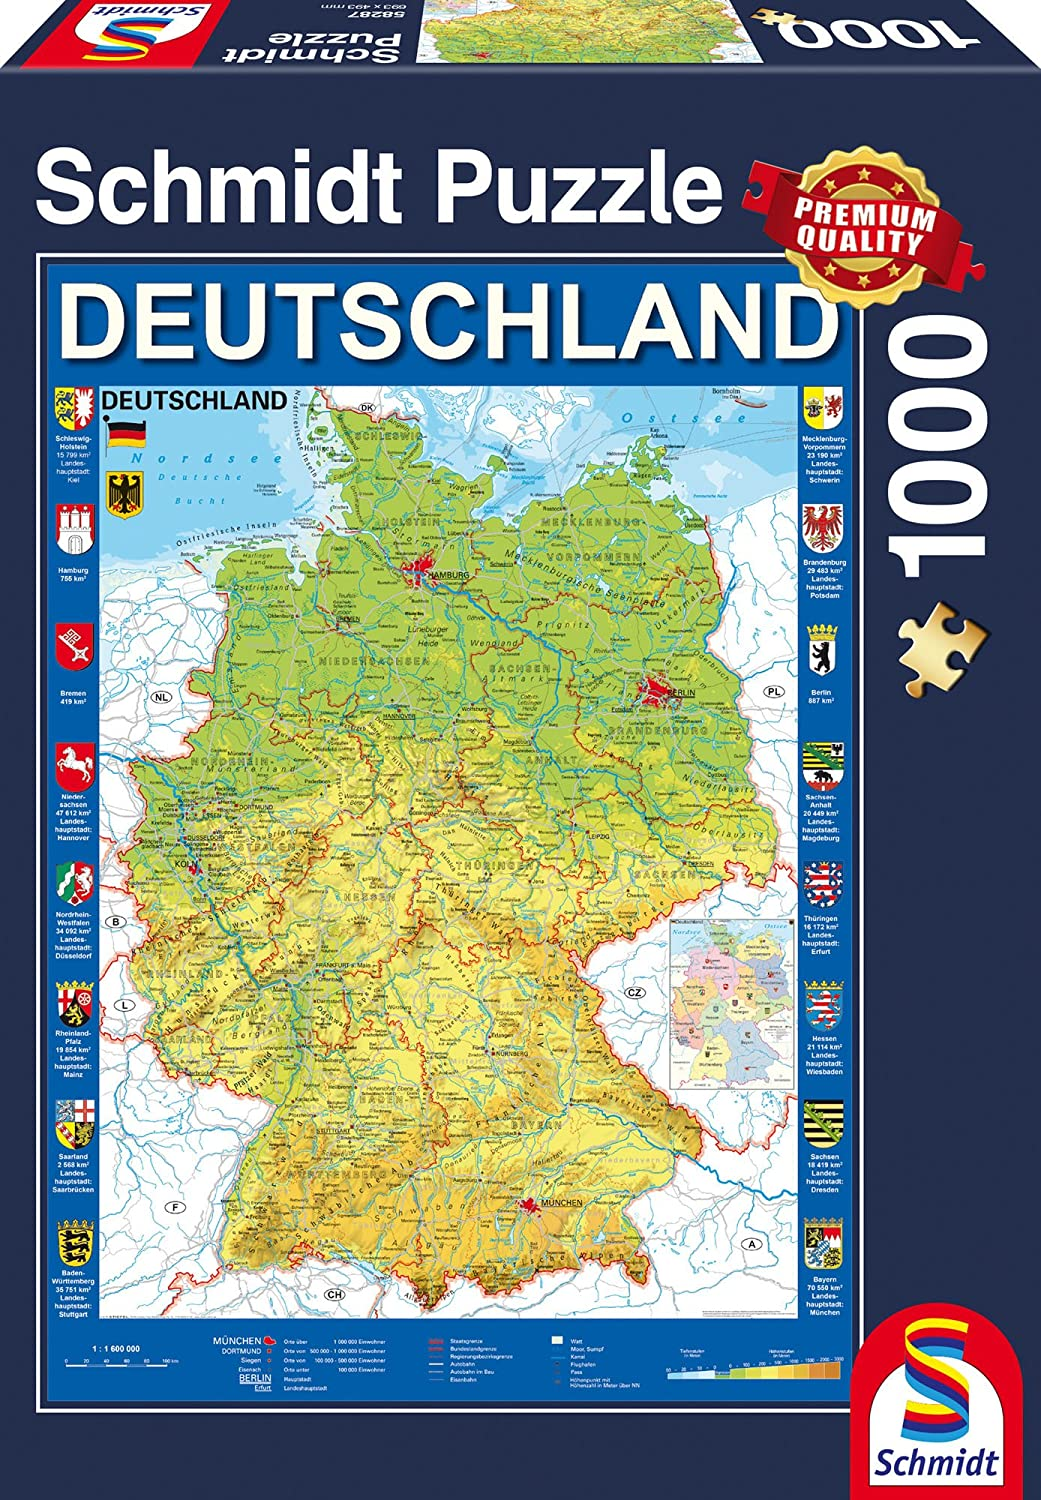 Schmidt spiele jigsaw puzzle 58287 germany map jigsaw puzzle 1000 schmidt spiele jigsaw puzzle 58287 germany map jigsaw puzzle 1000 pieces amazon toys games gumiabroncs Image collections